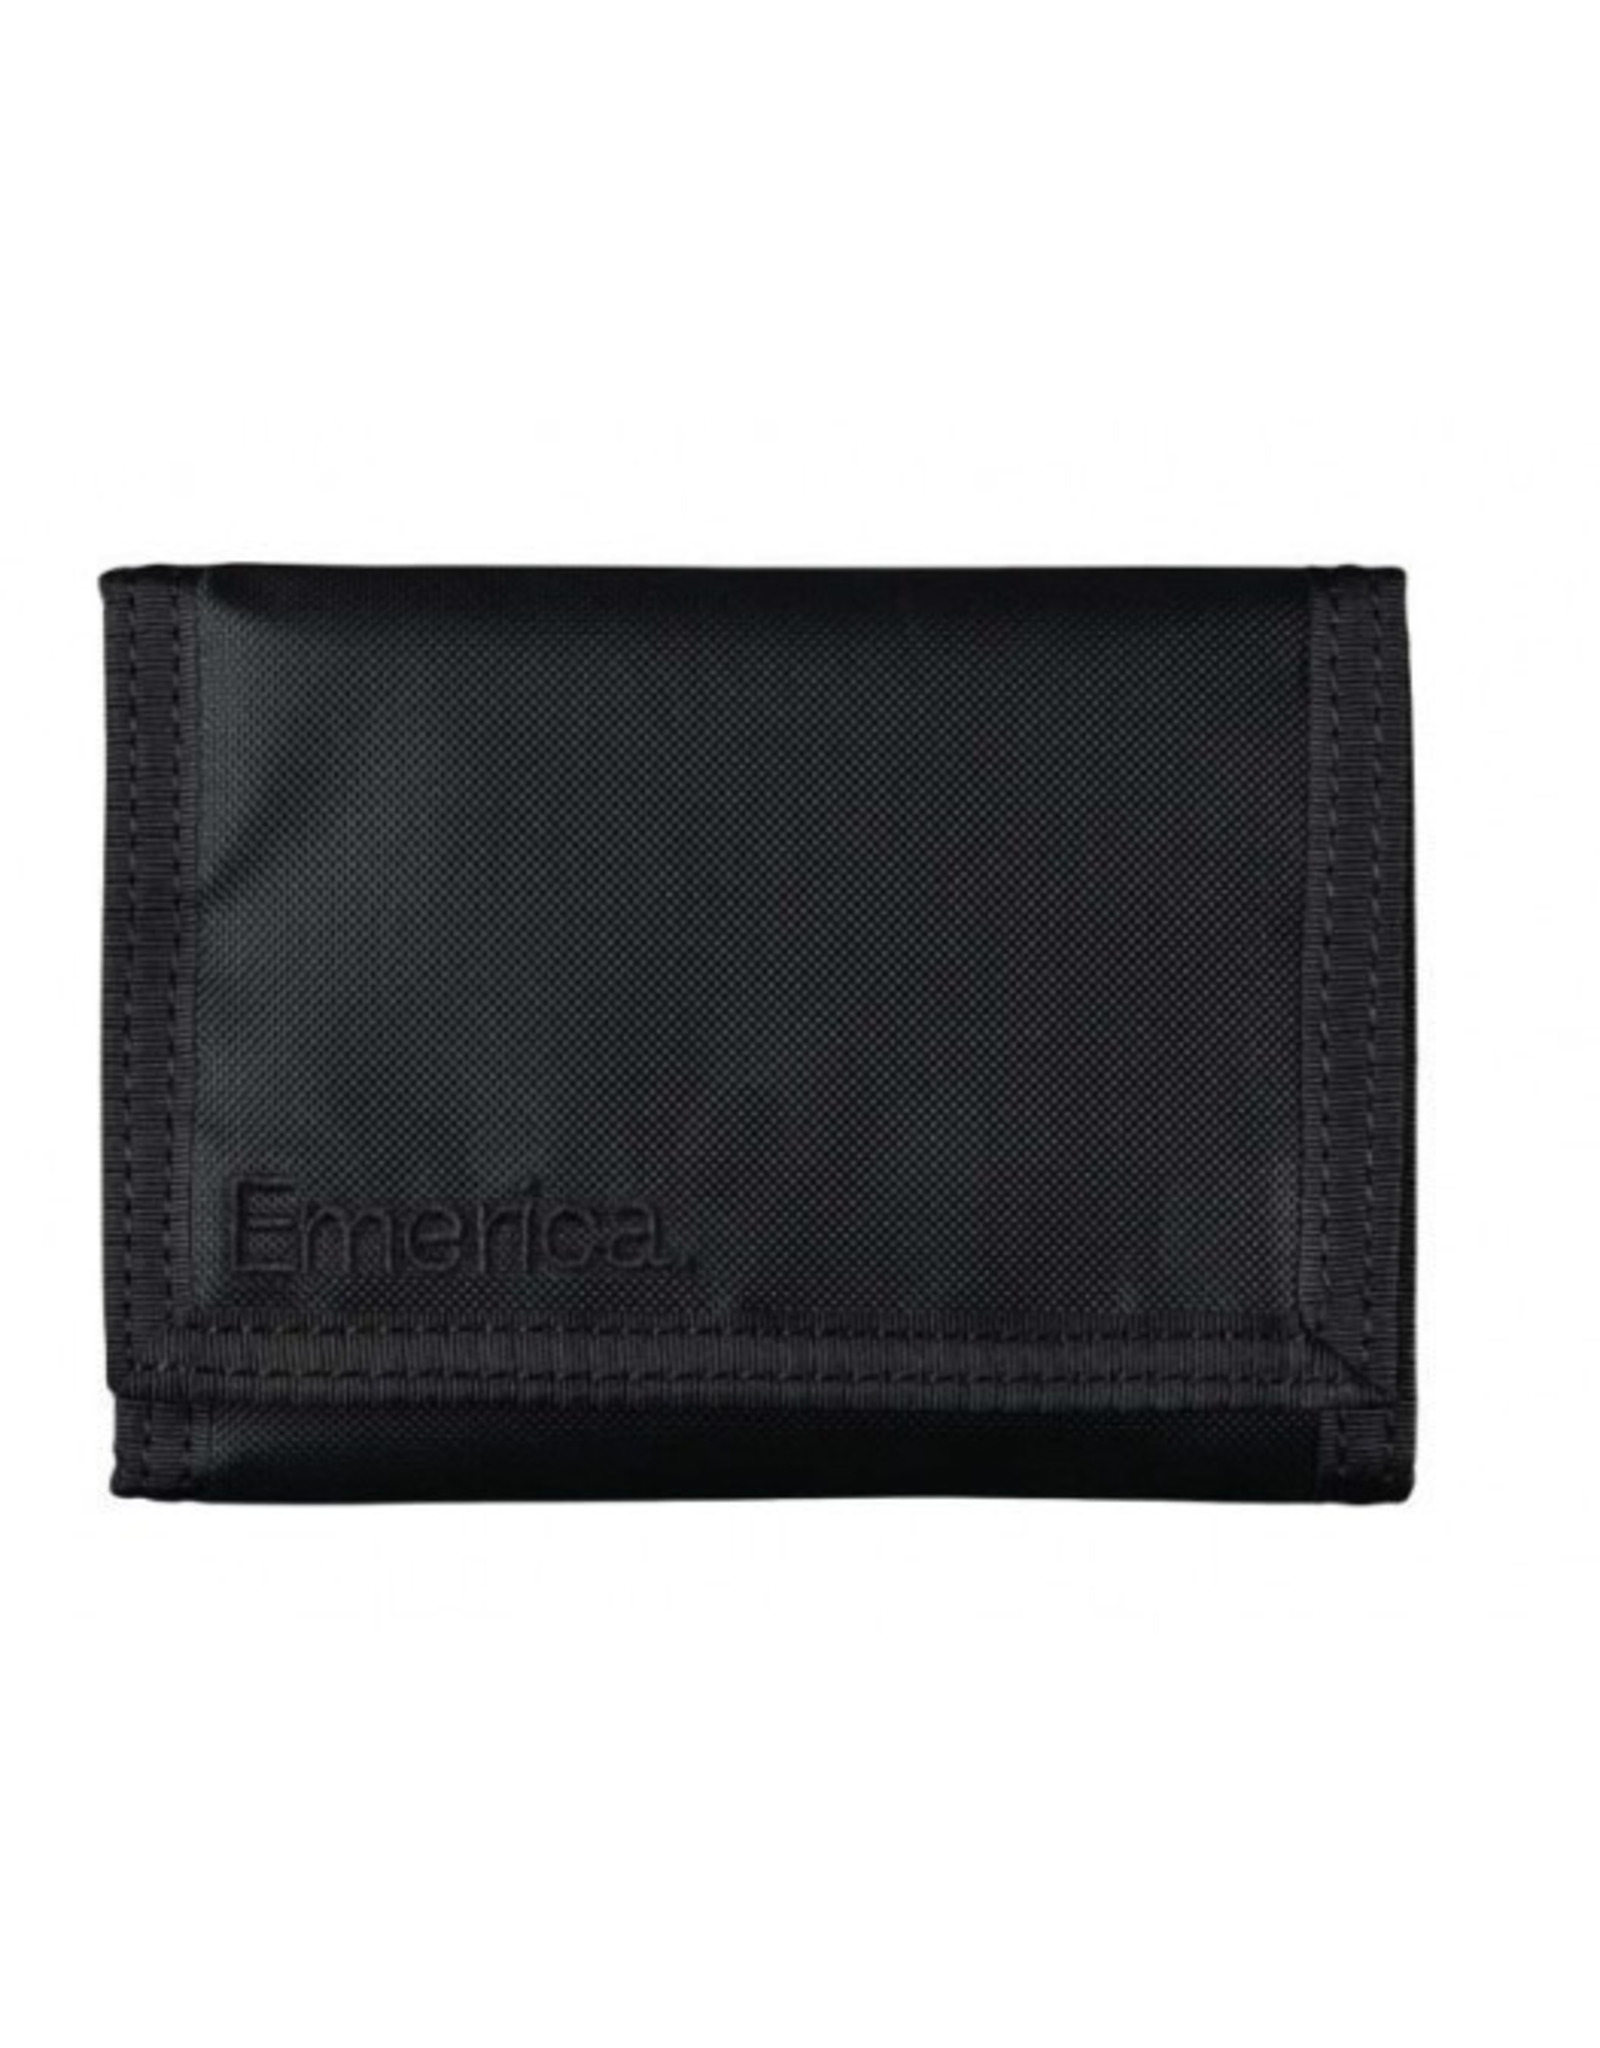 Emerica Emerica Pure Wallet